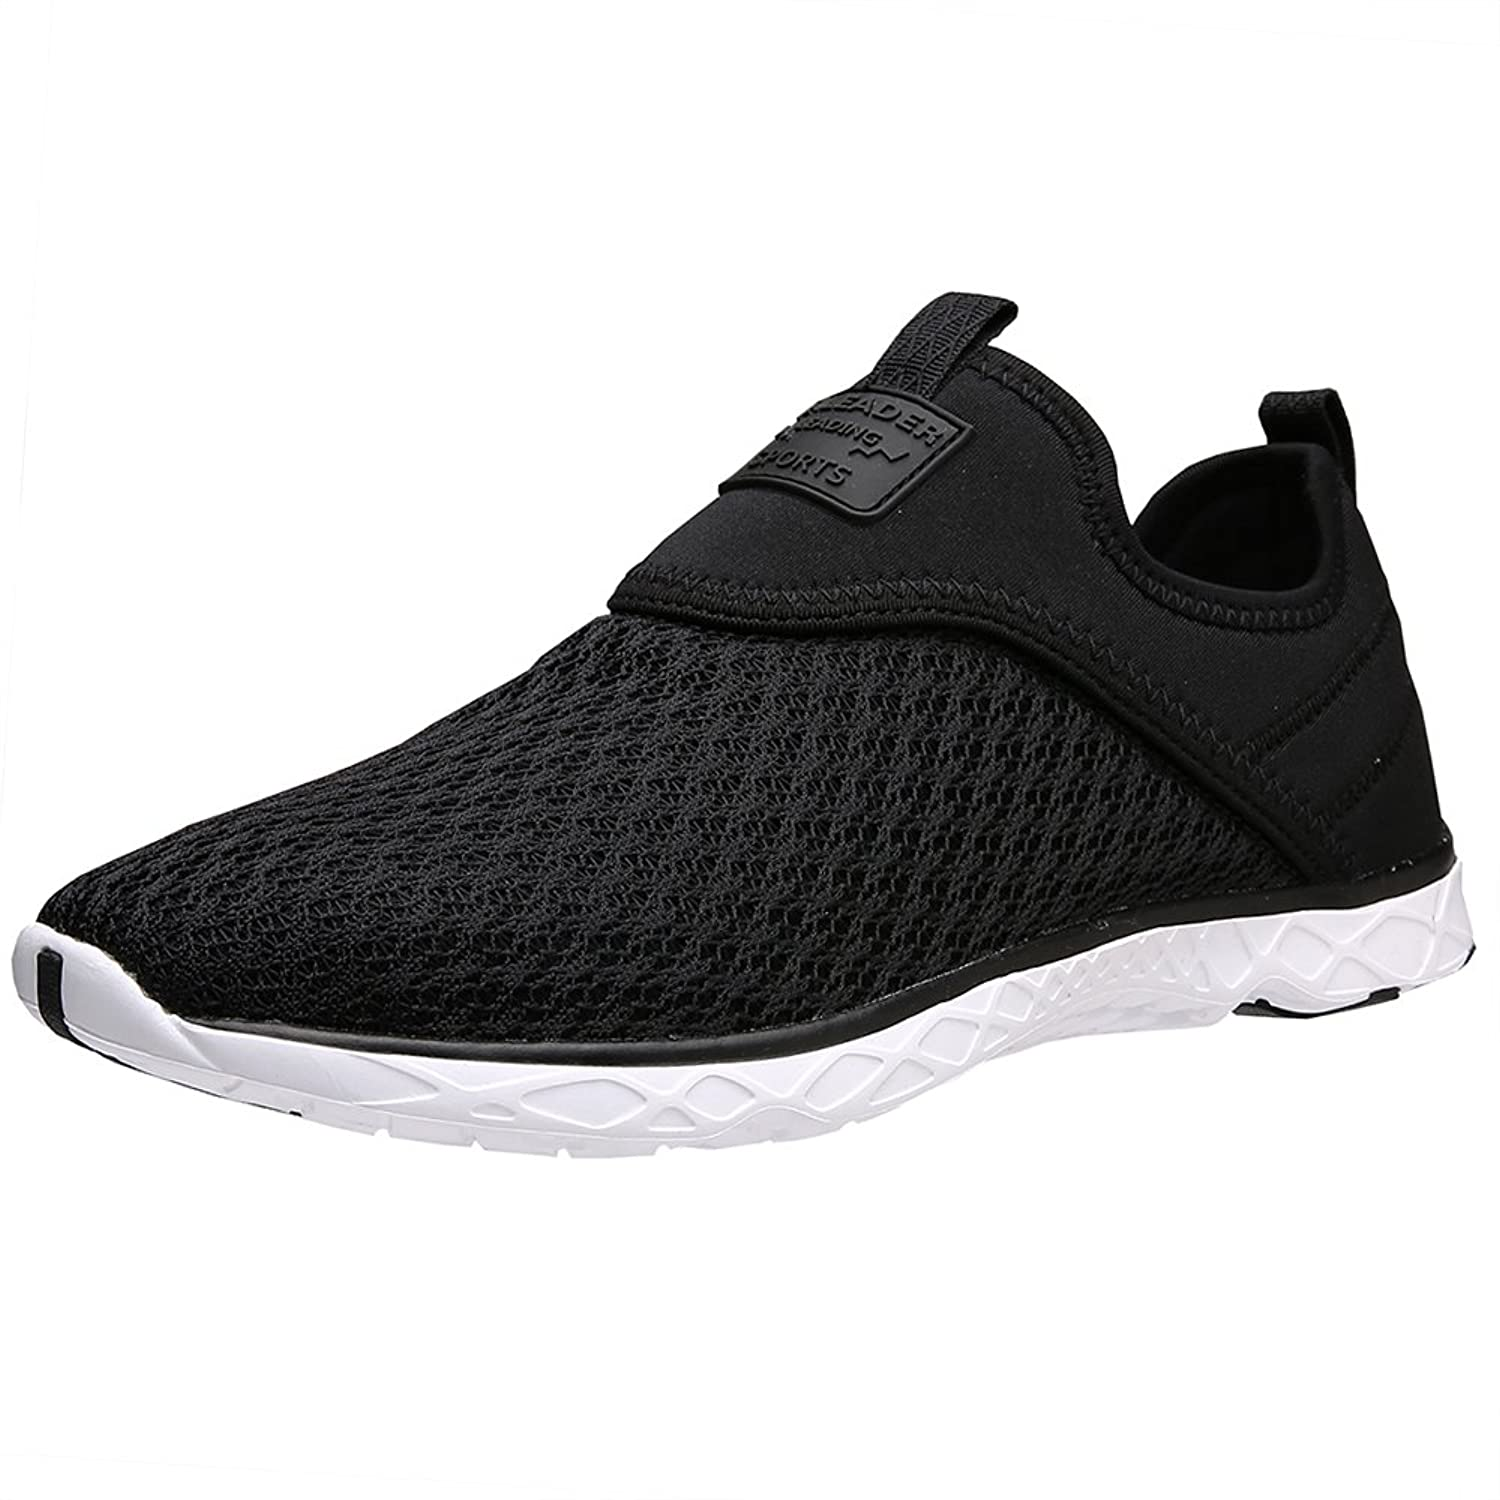 Aleader Women's Slip-on Athletic Water Shoes